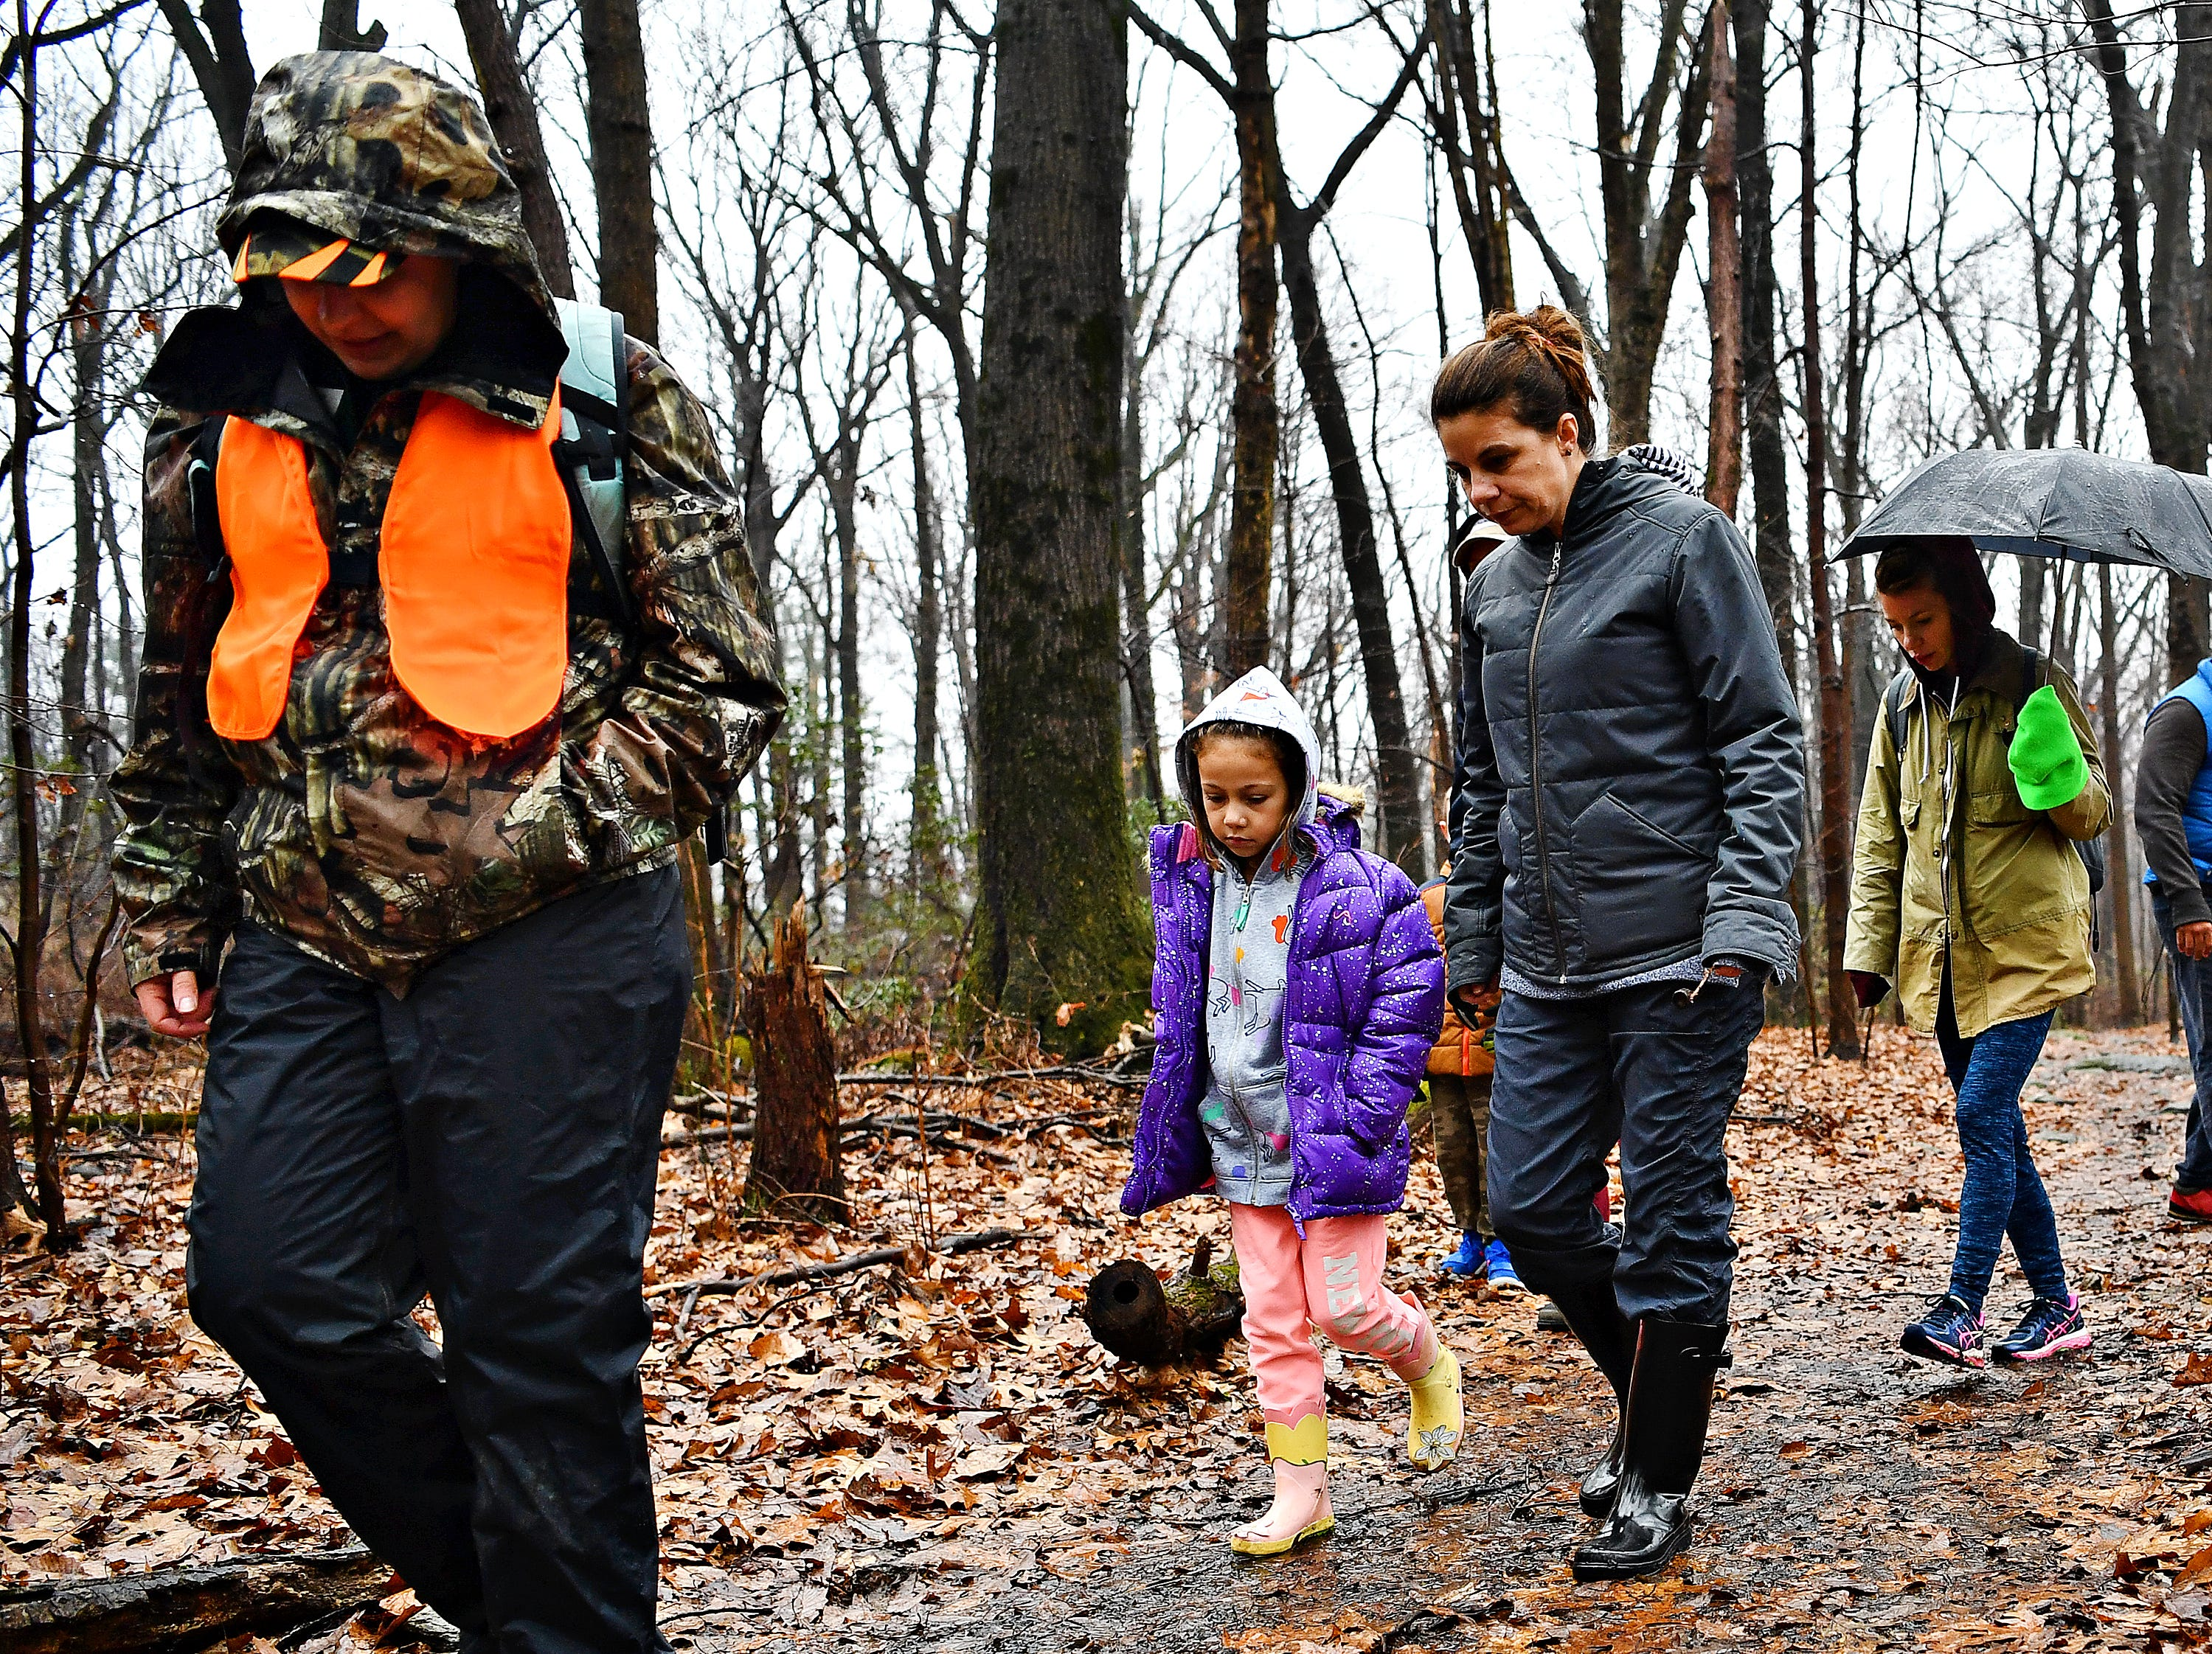 From left, York County Parks Naturalist Kelsey Frey leads Matilda Hernandez, 7, and her mother Tiffany Butler, both of Yucatan, Mexico, and Melanie Butler, of Lancaster, during a Marshmallow Hike at Rocky Ridge Park in Springettsbury Township, Friday, Dec. 28, 2018. Dawn J. Sagert photo